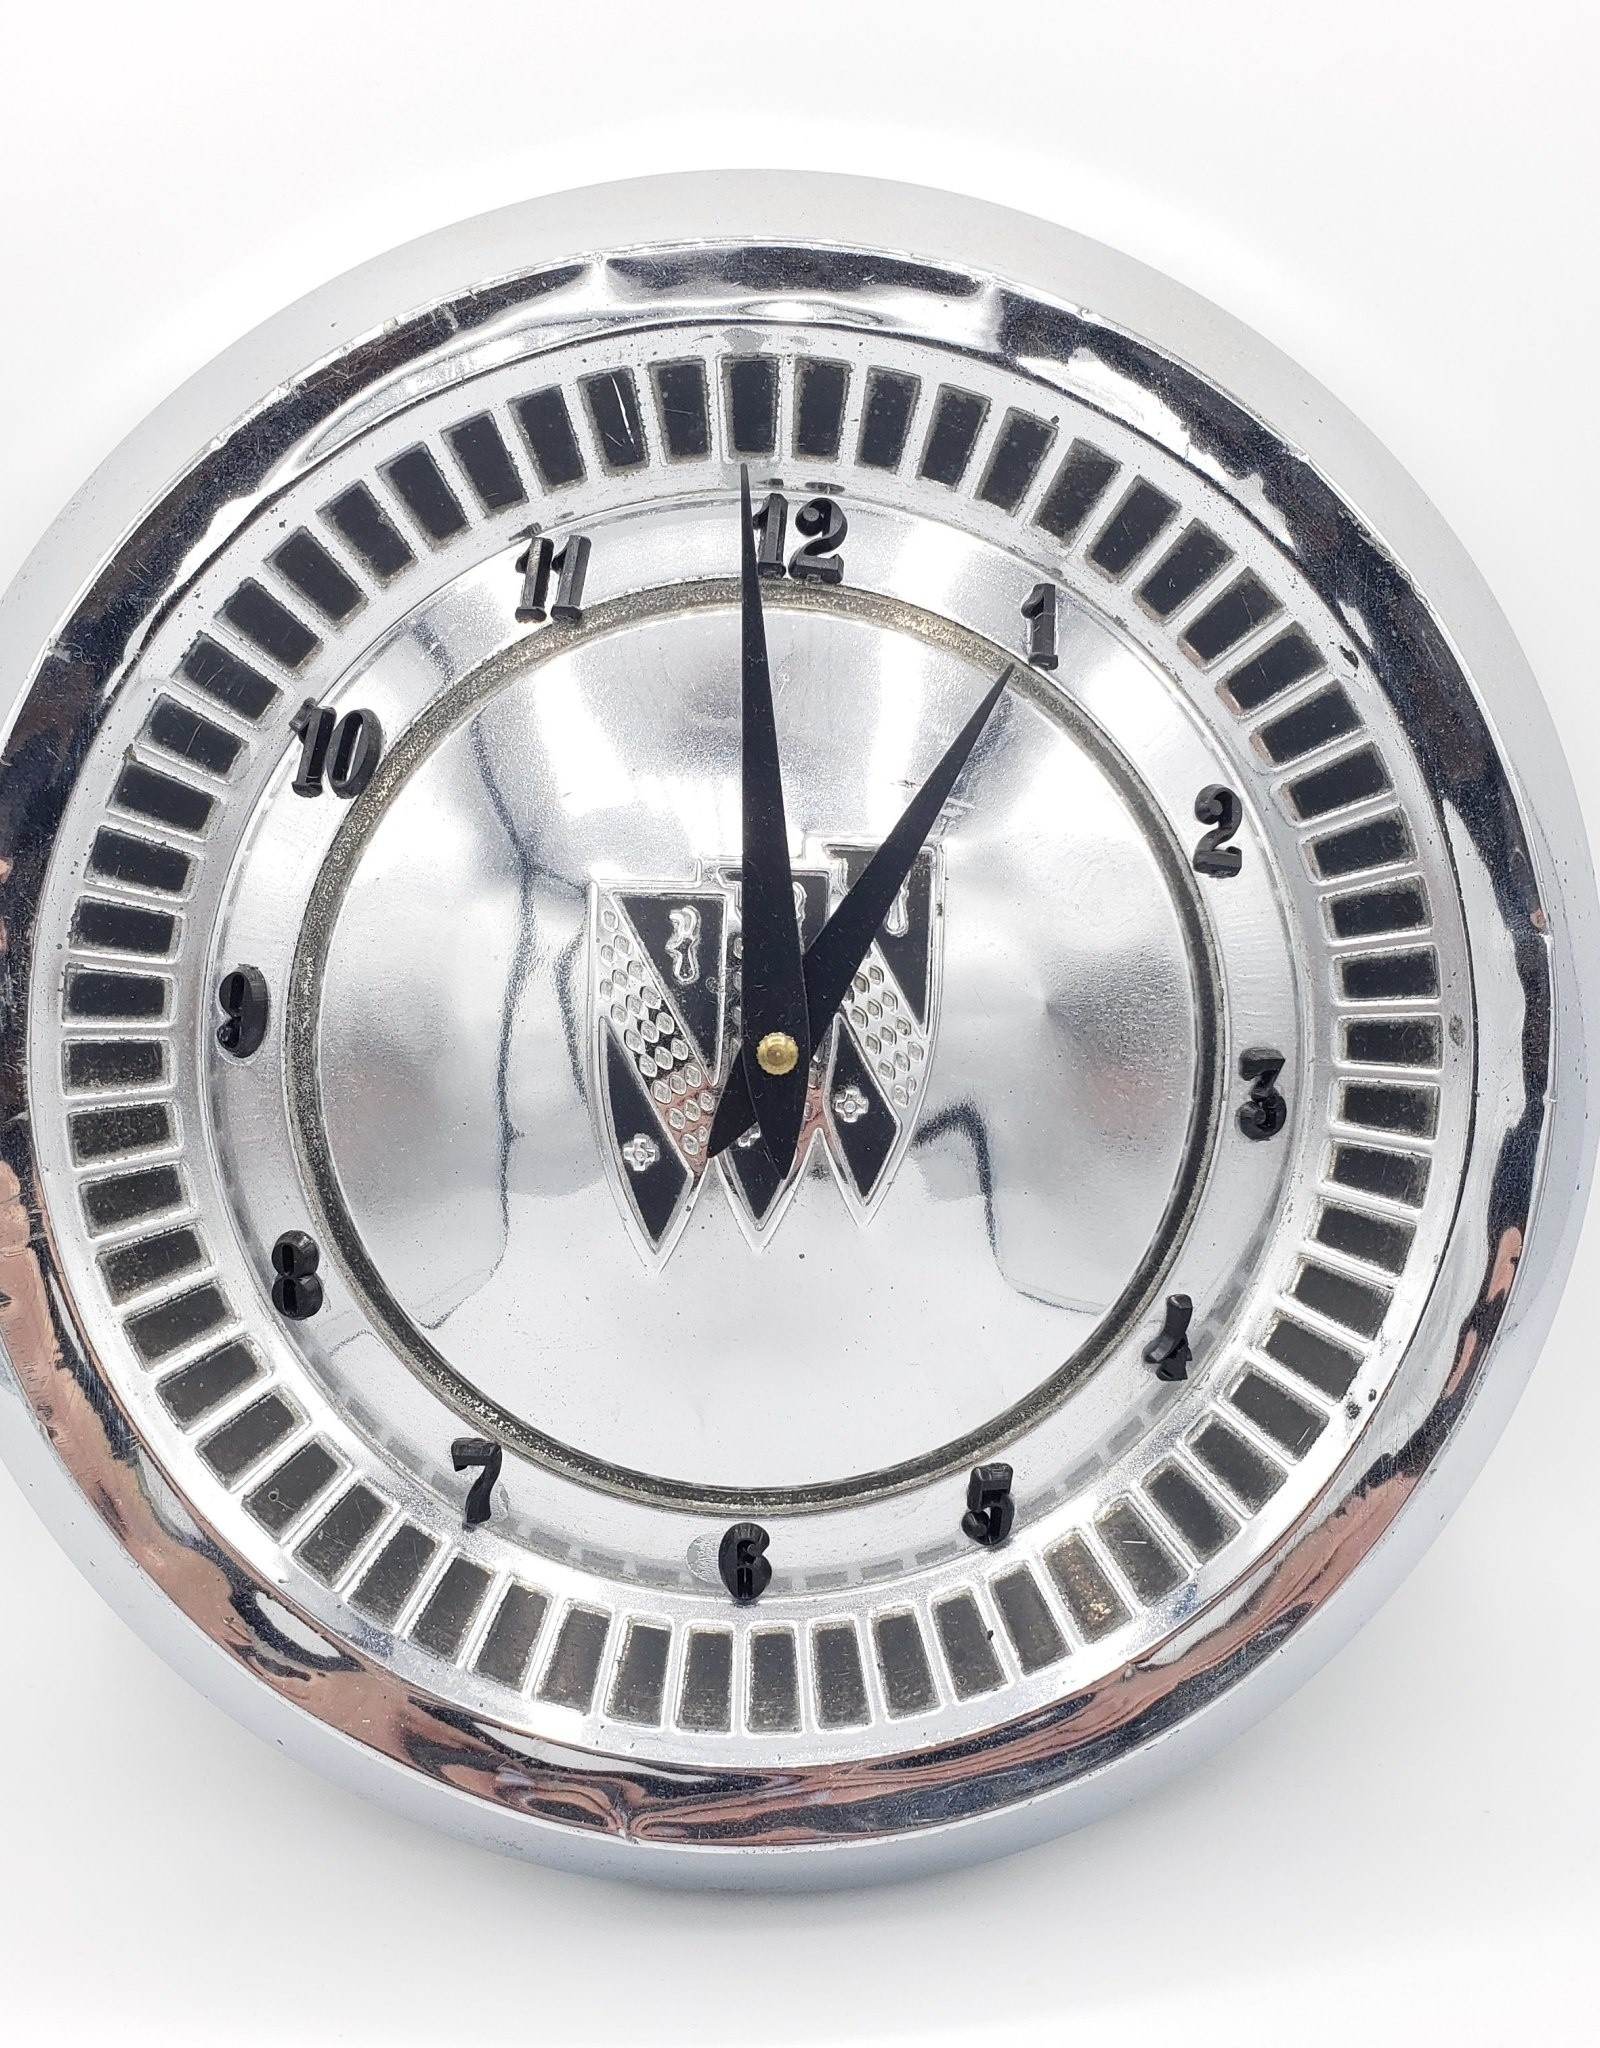 Redux Upcycled Hubcap Wall Clock